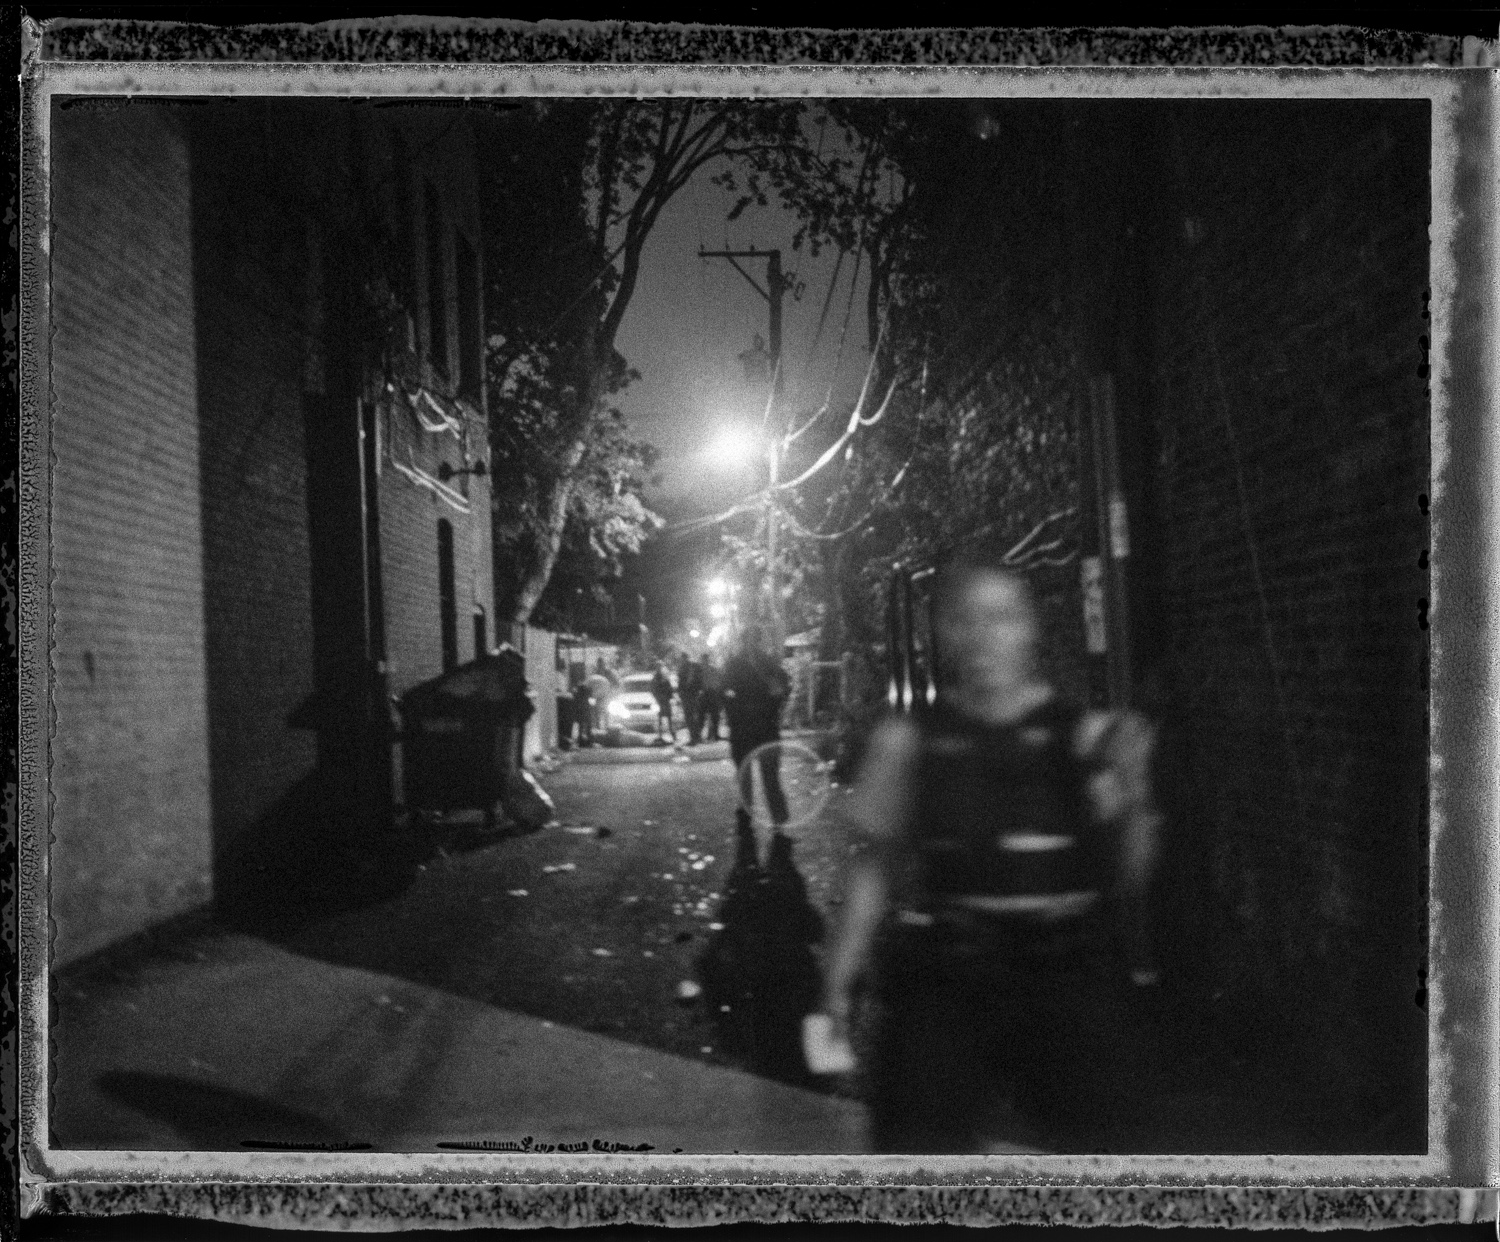 """Just minutes after a double shooting a man lies in an alley near the 7100 S. Rhodes block in the Grand Crossing neighborhood on Chicago's South Side. The shooting was in apparent retaliation to a shooting that had happened the previous day. In """"Chi-Raq,"""" more young people have died in the past five years than in Afghanistan and Iraq combined. There still is not one trauma unit anywhere on the South Side, despite the fact that the city leads the country in the number of homicides, with the majority occurring south of the Loop. But to understand what's at stake, we must look far deeper than the latest crime scene to see the immense waste of human potential that's being lost with each violent act. The media's never-ending focus on the violence obscures a larger and far more significant truth: that the wholesale neglect has led to the practical destruction of these communities."""